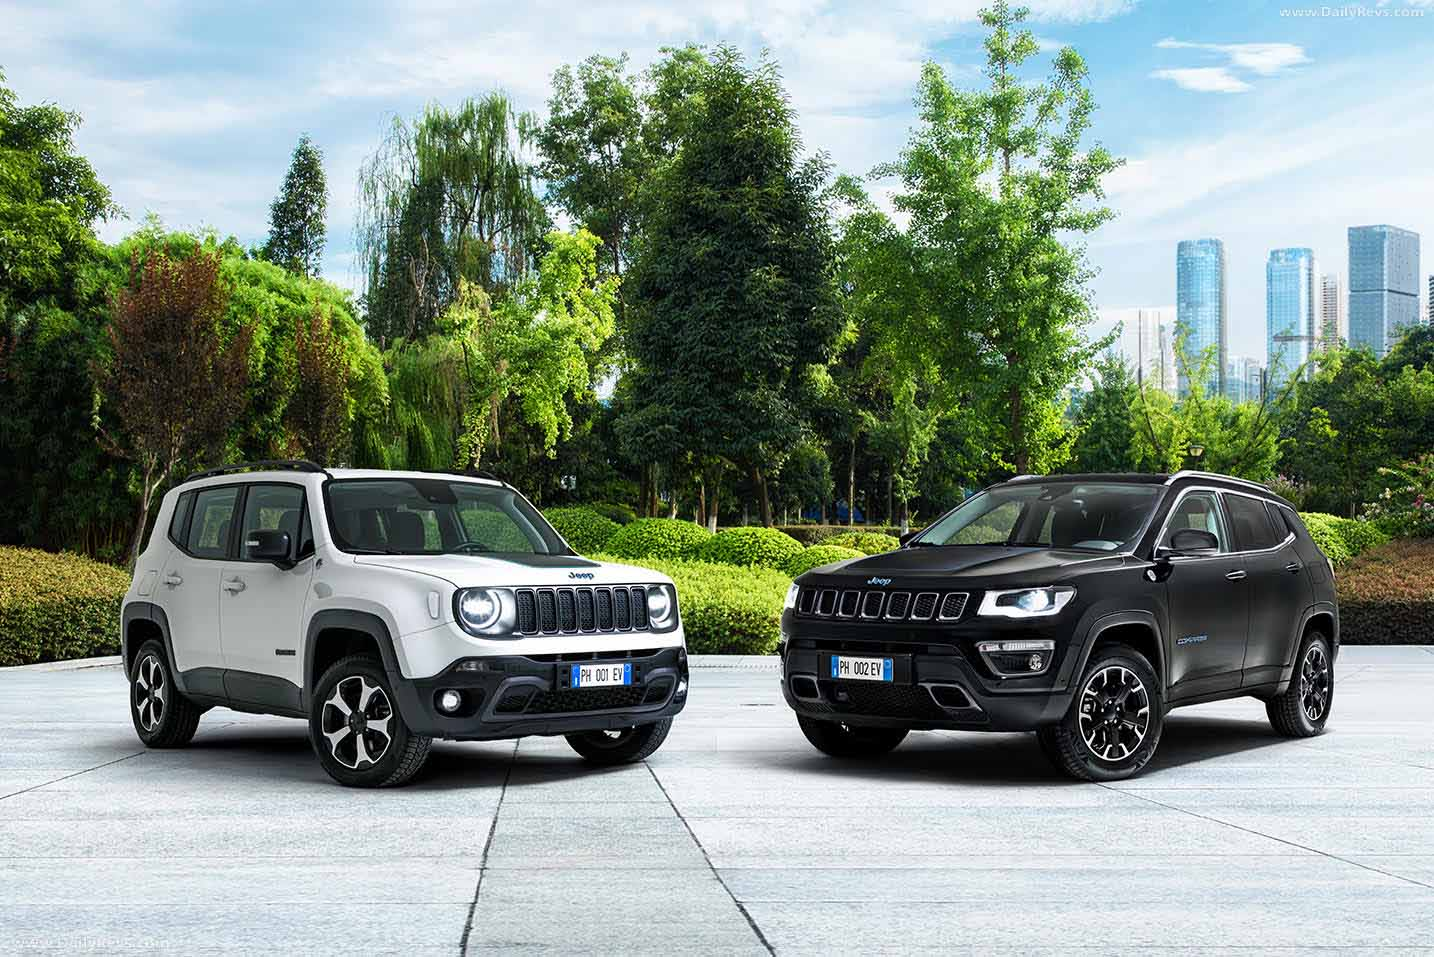 2020 jeep compass 4xe first edition - hd pictures, videos